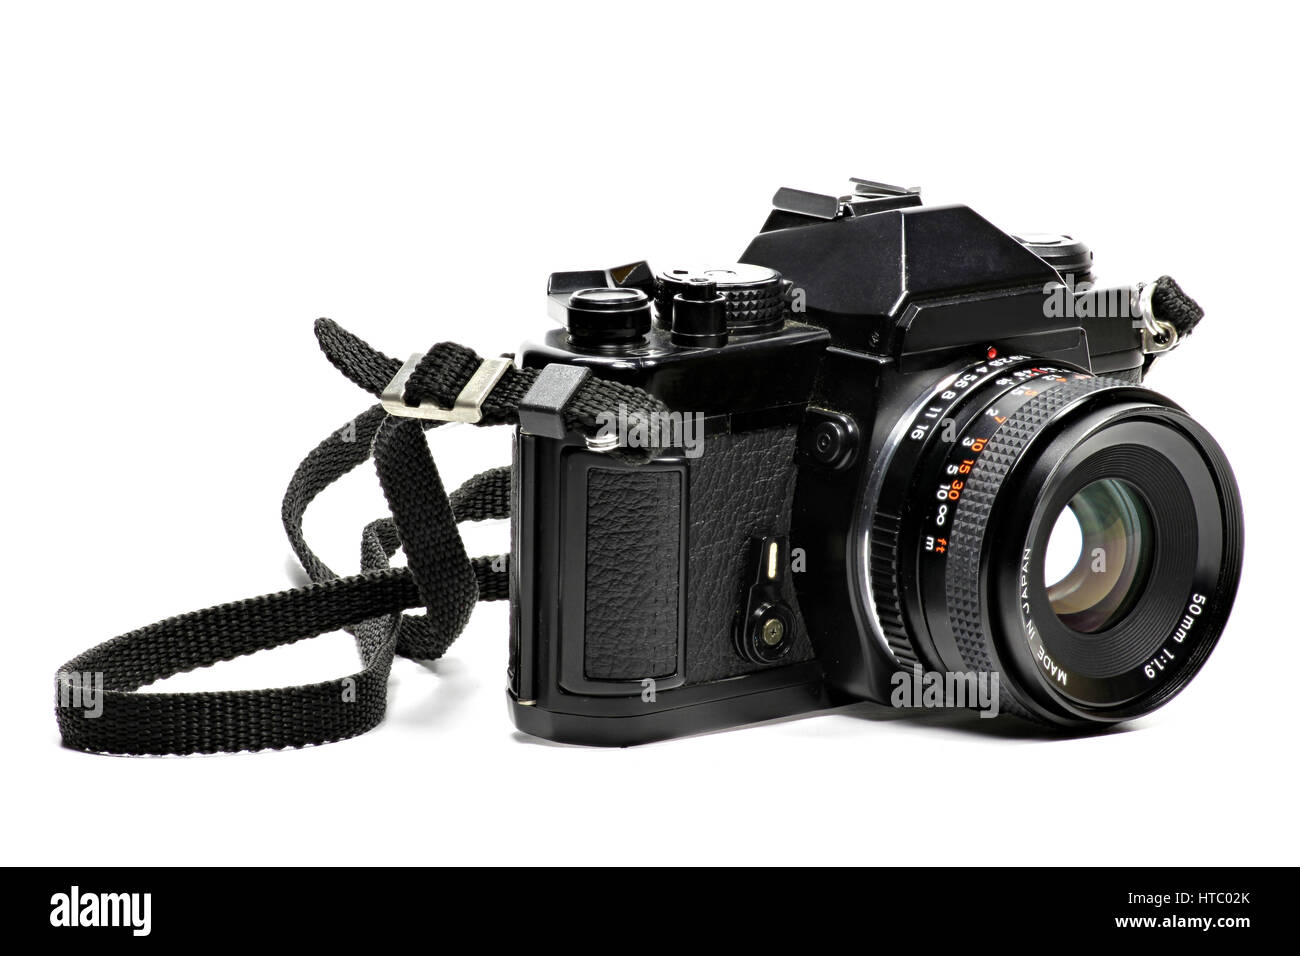 analogue single-lens reflex camera isolated on white background - Stock Image